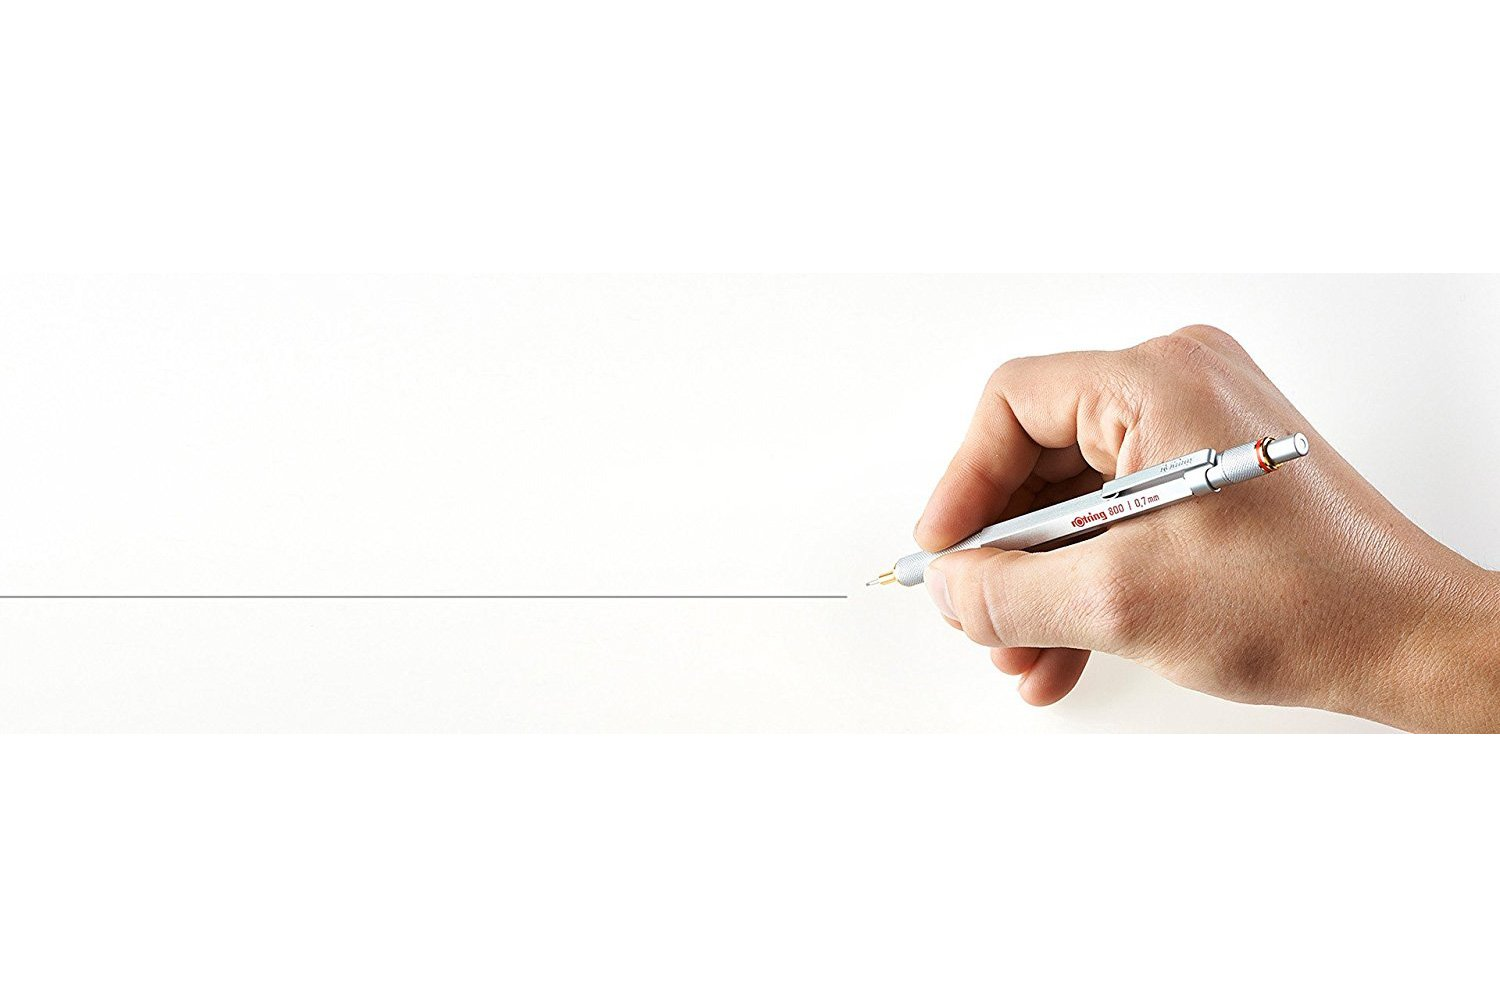 rOtring 1904448 800 Retractable Mechanical Pencil, Silver Bar, 0.7 mm, Silver Barrel by Rotring (Image #7)